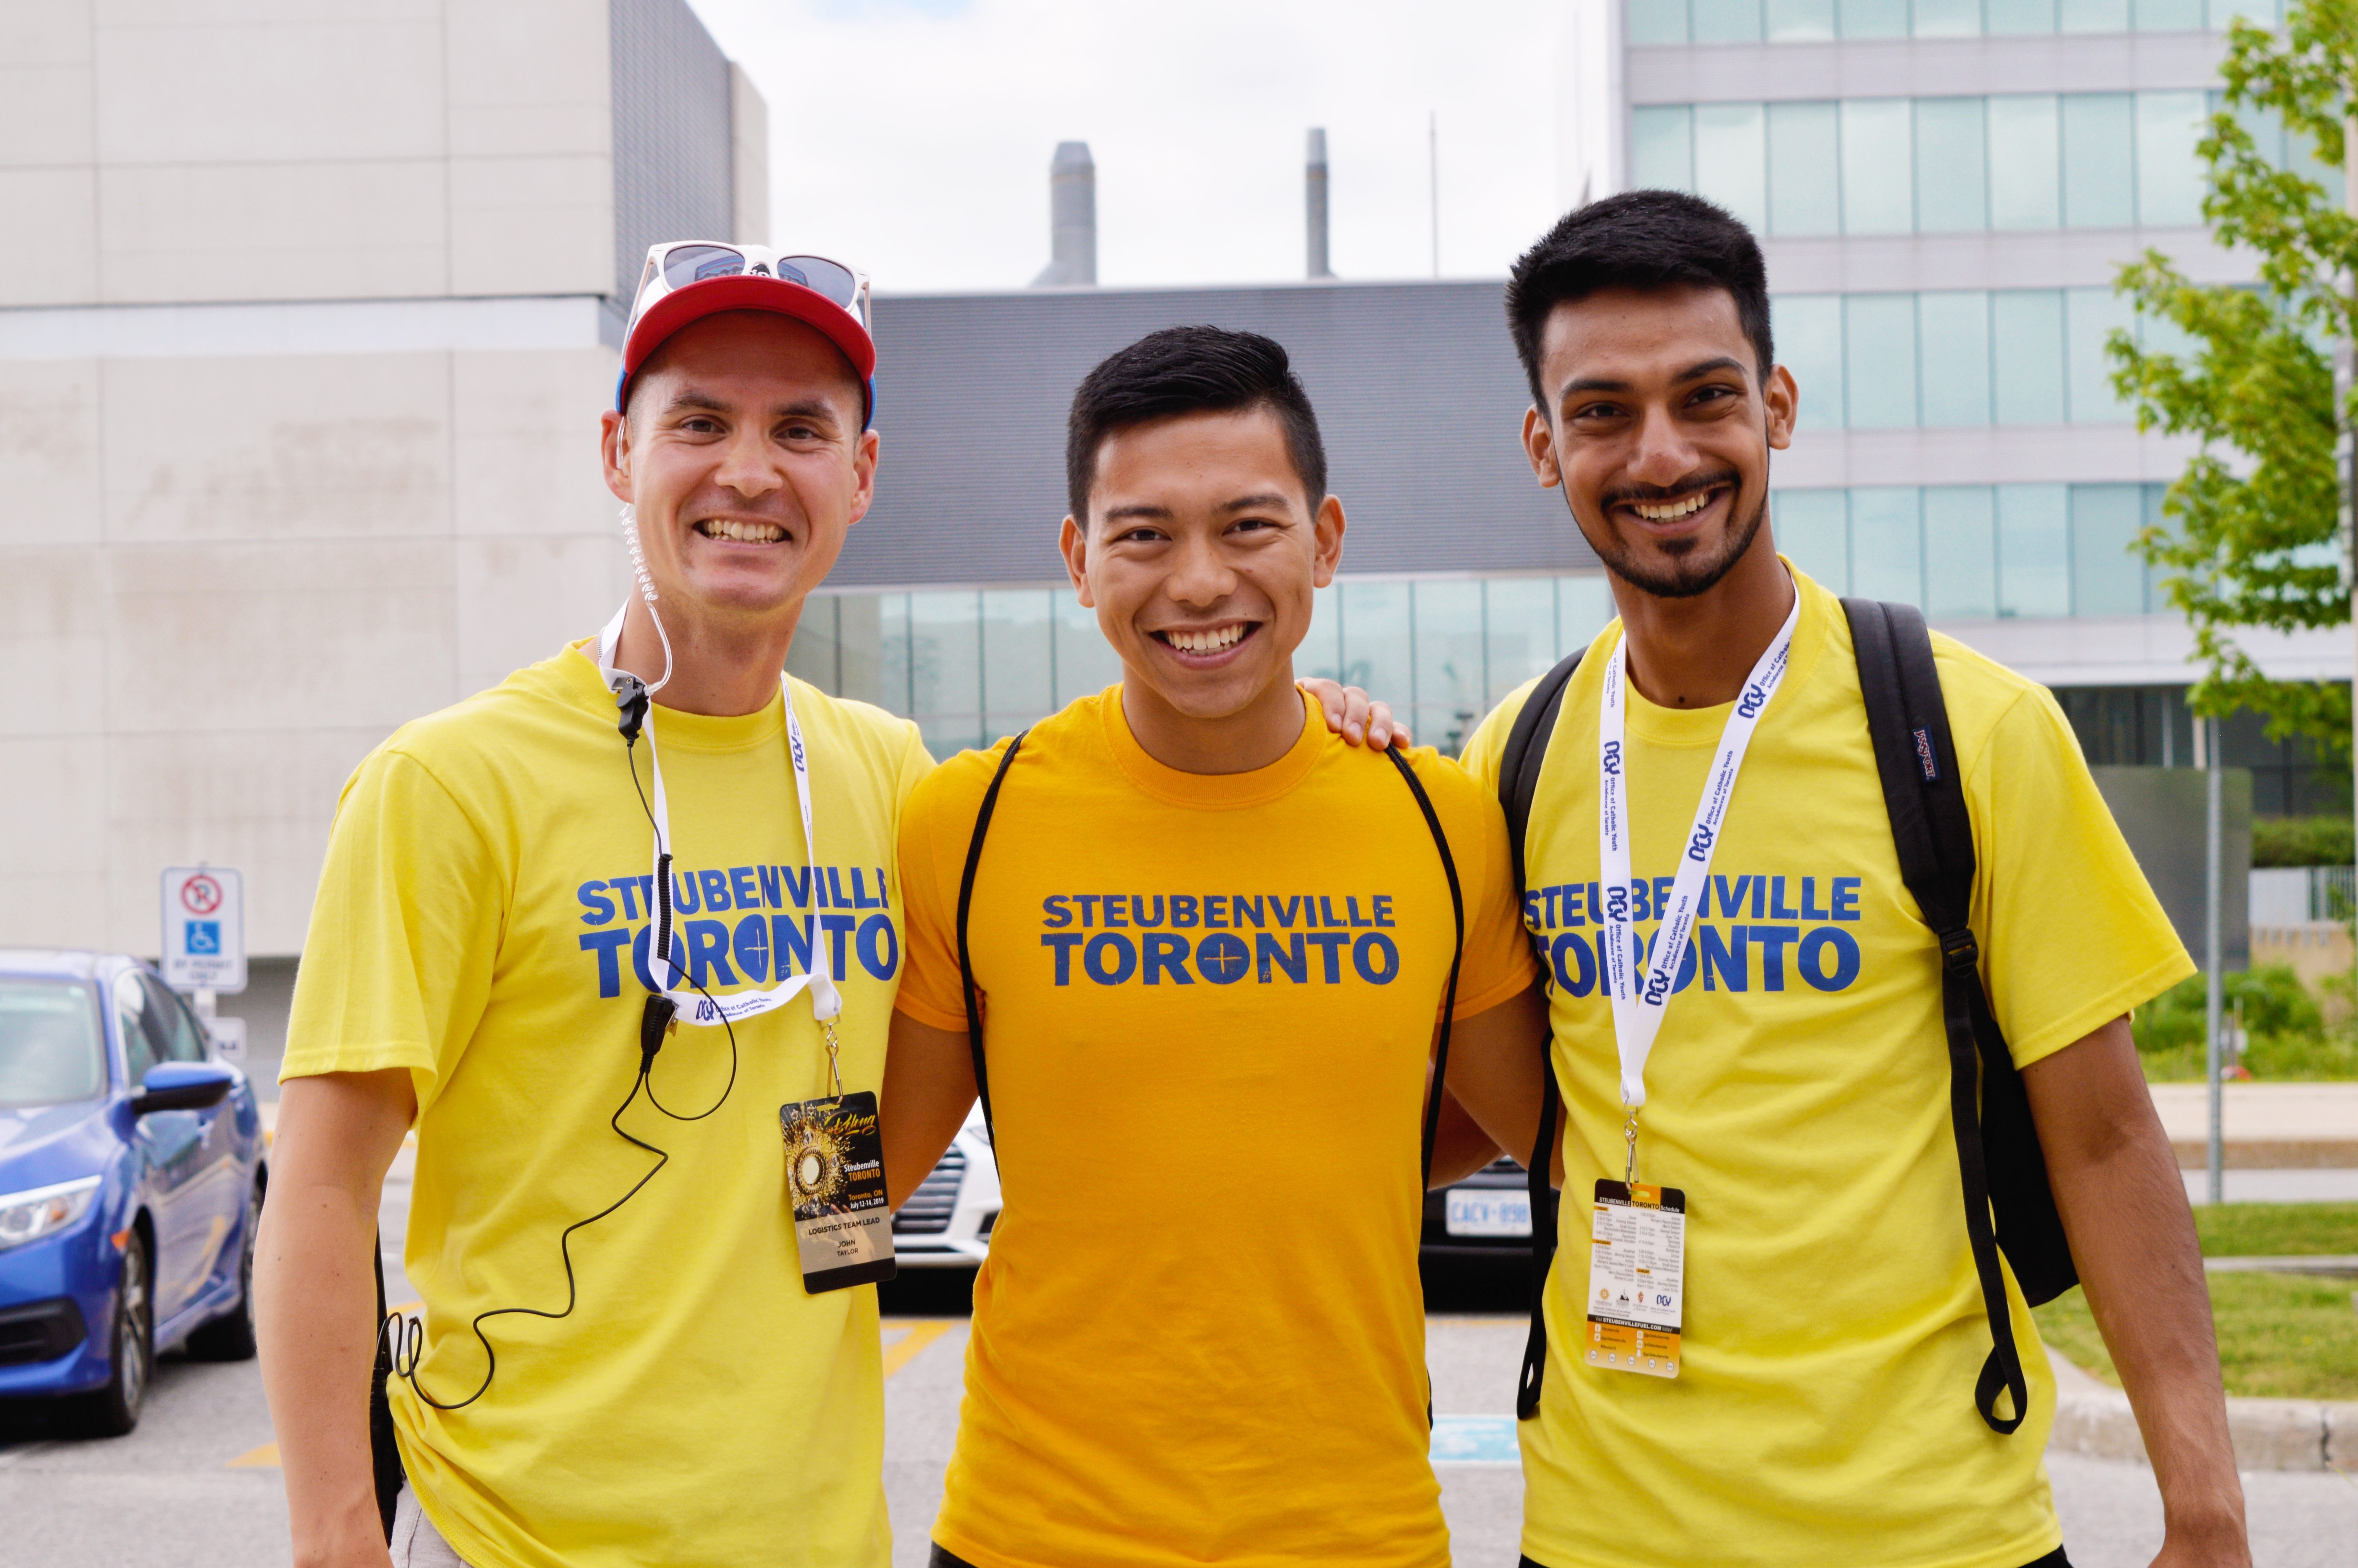 Three men of various ethnicities wearing yellow shirts and smiling together